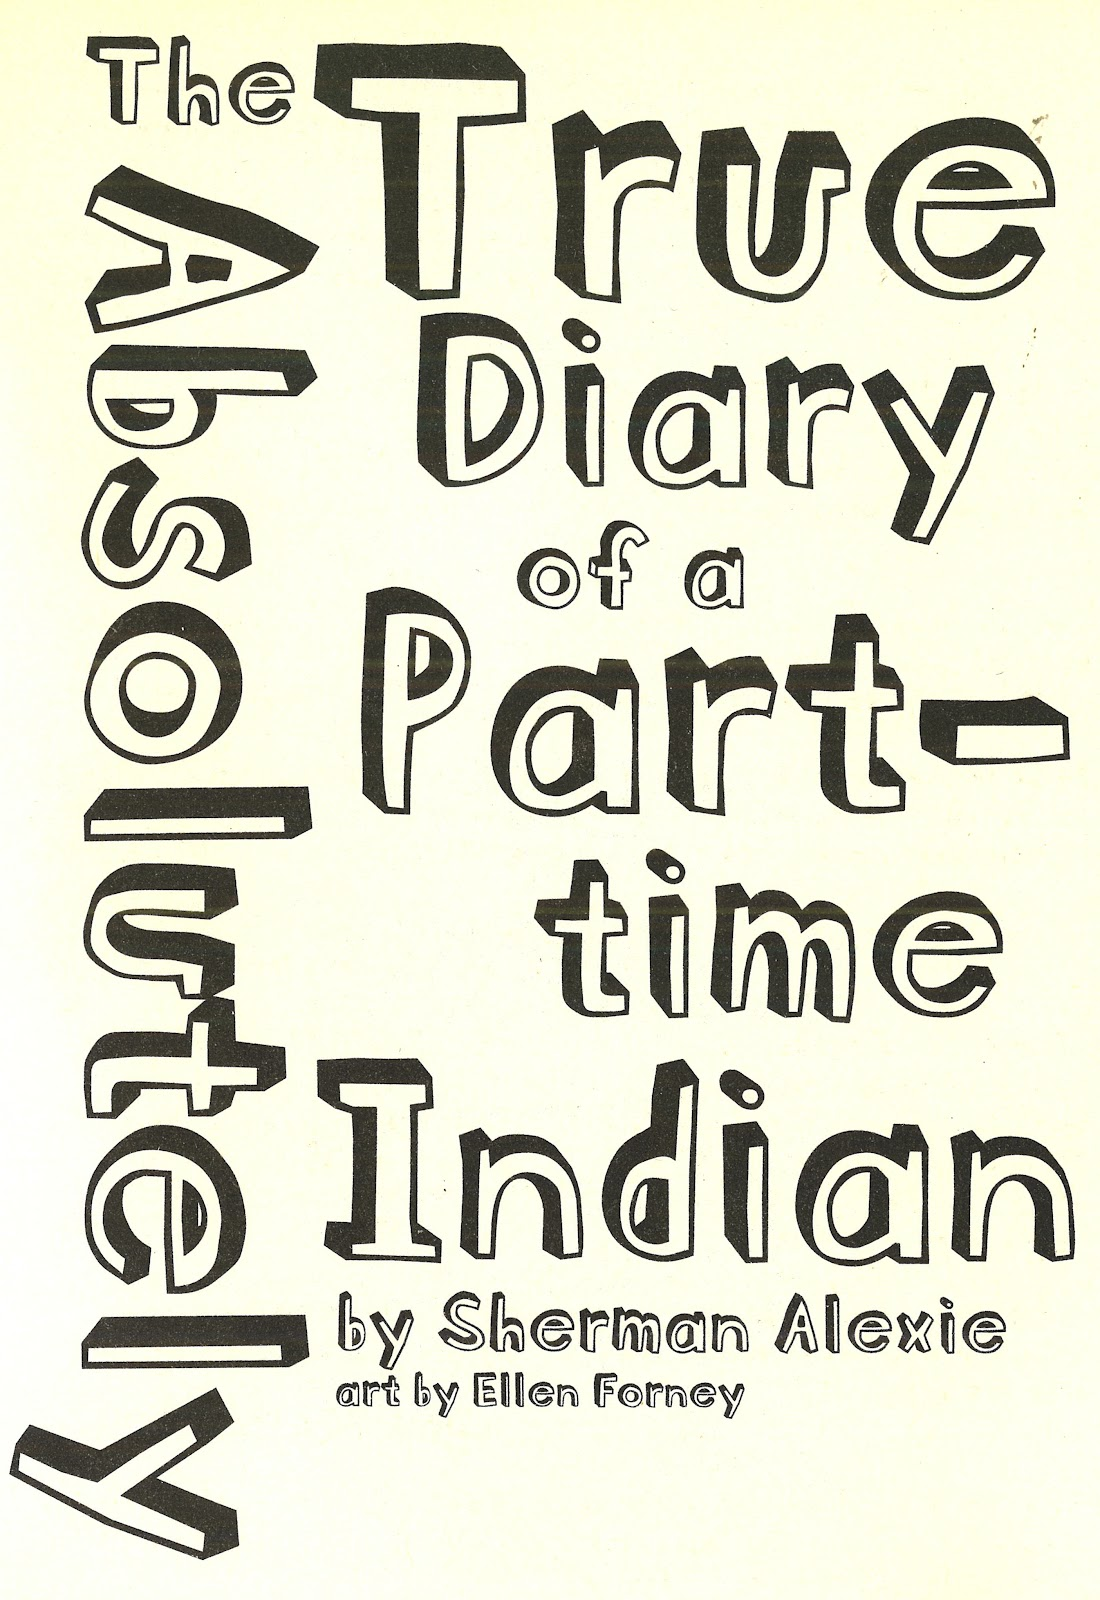 Absolutely True Diary Of A Part Time Indian Quotes Simple The Absolutely True Diary Of A Parttime Indian Quotes  Quotes Of .